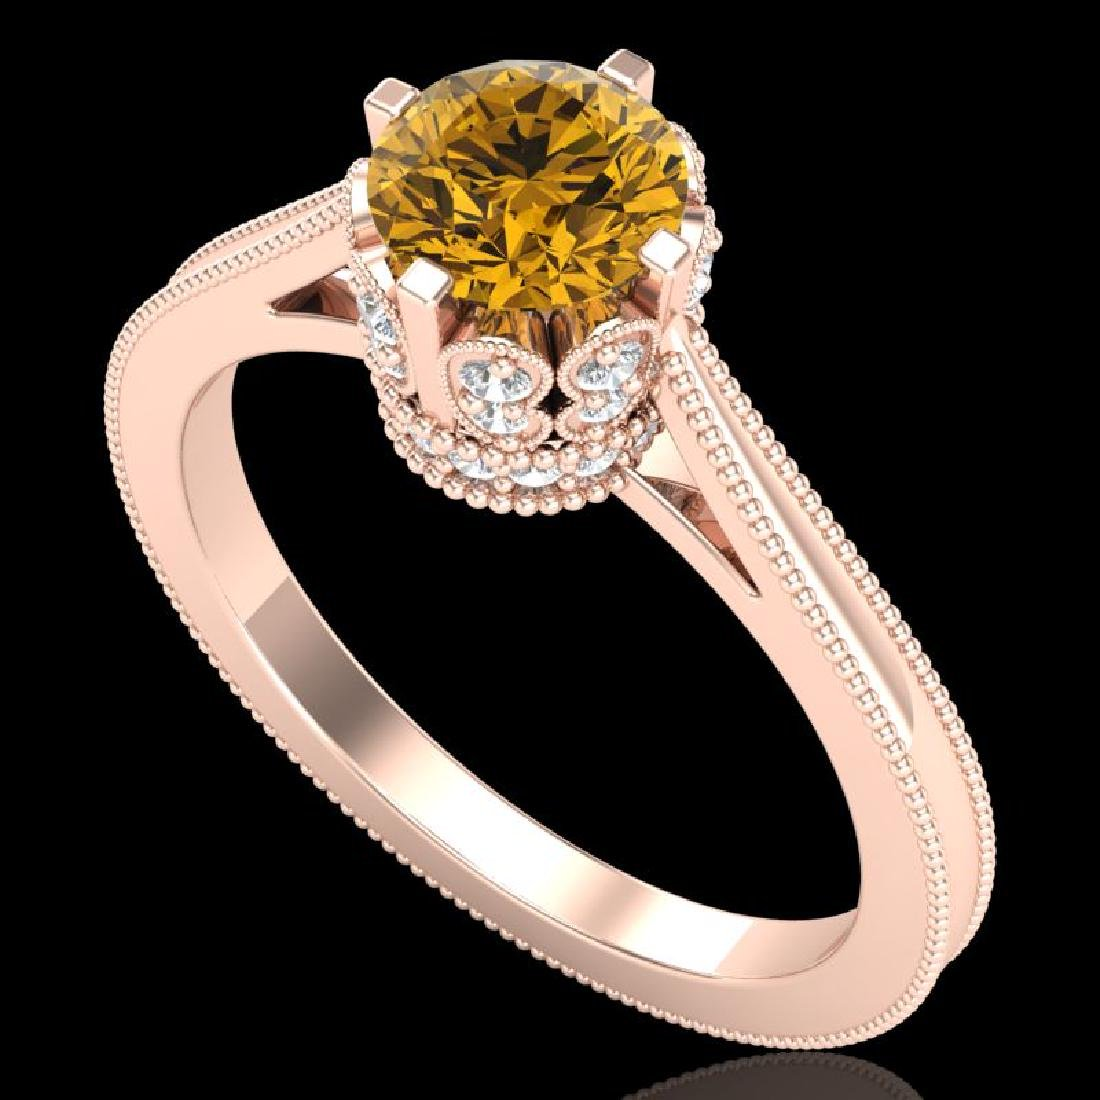 1.14 CTW Intense Fancy Yellow Diamond Engagement Art